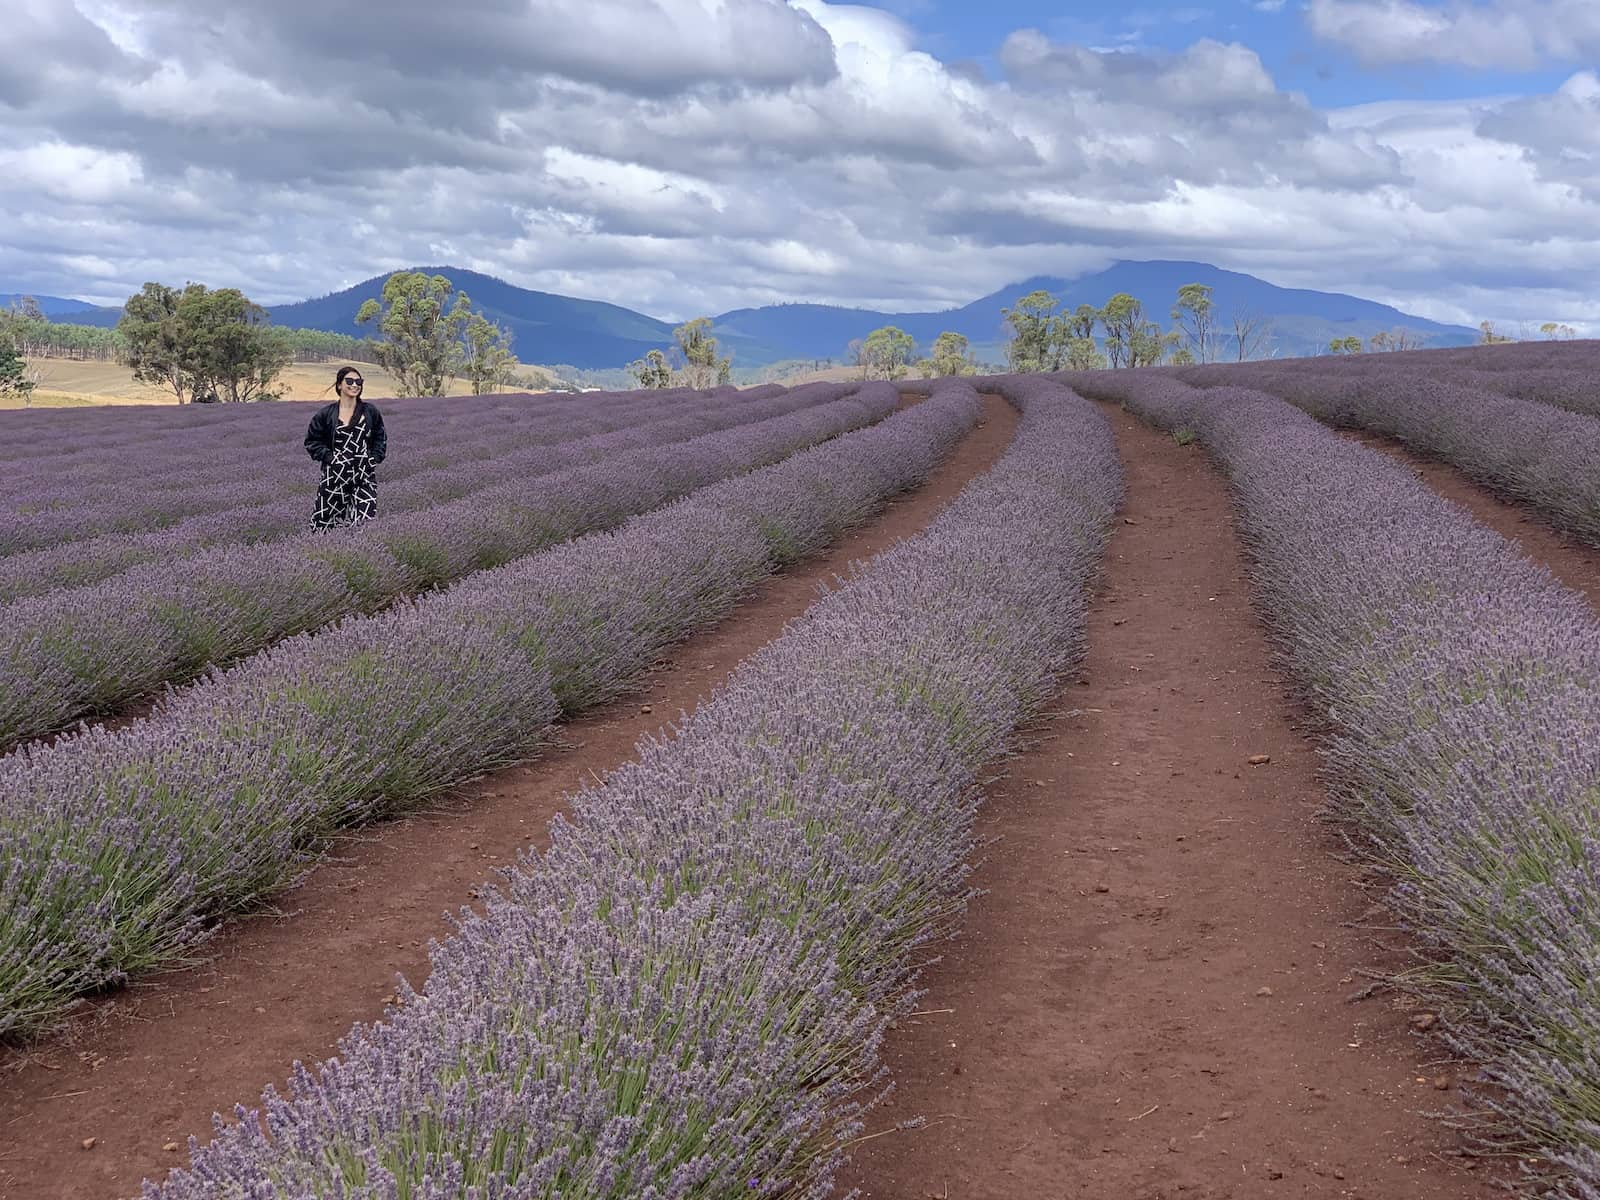 More distinct rows of lavender, with a woman in a black patterned jumpsuit just behind one of the rows